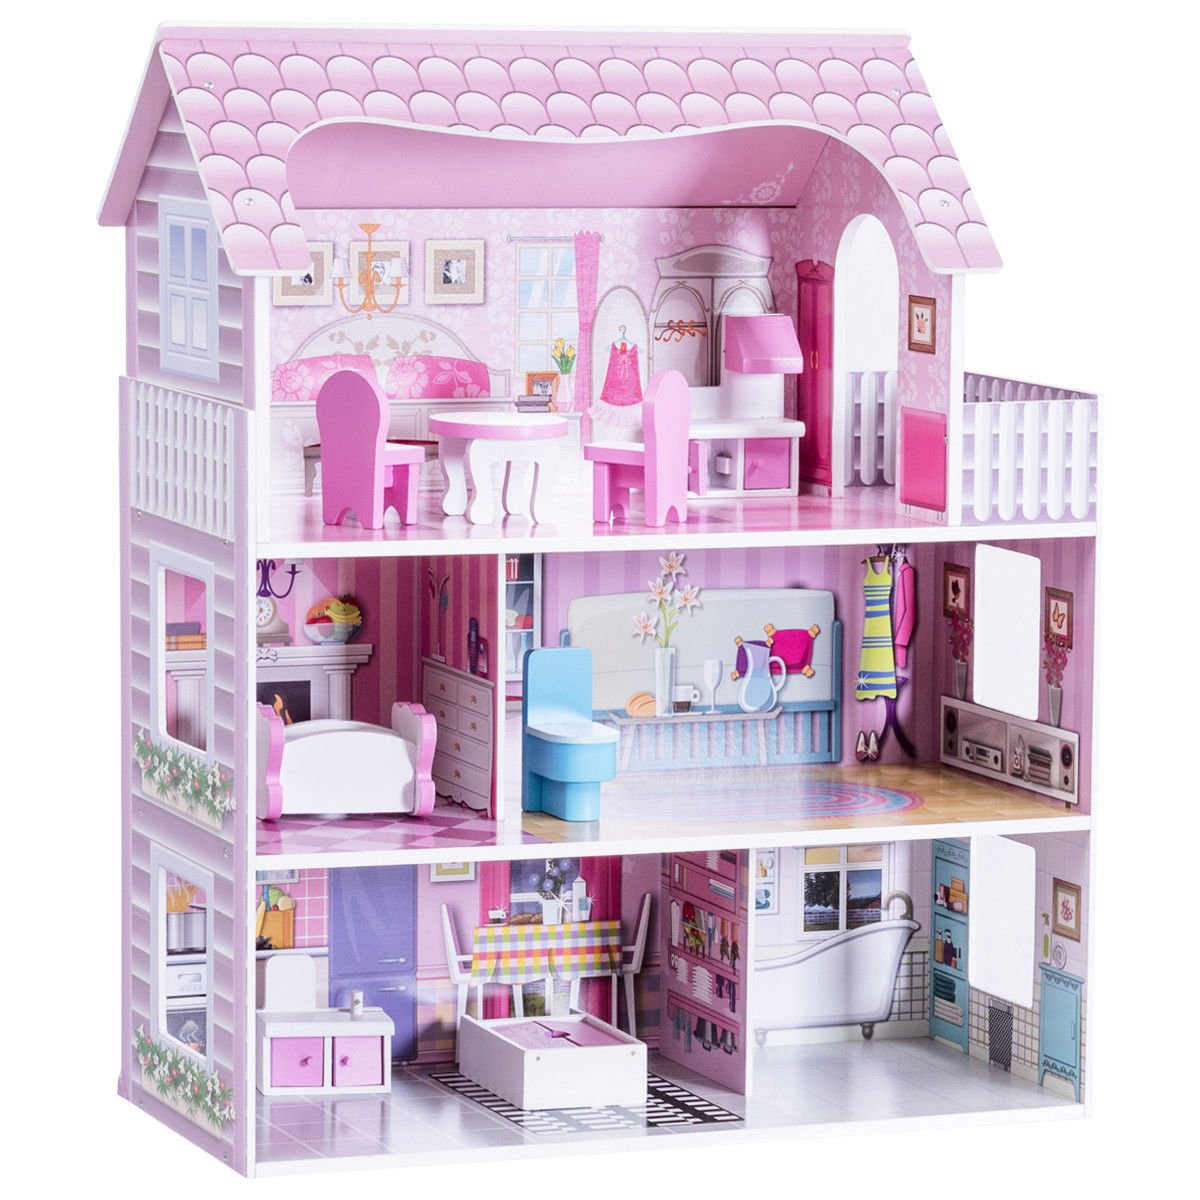 Costzon 28'' Dollhouse 3 Levels House with 5 Rooms and Furniture, Pink